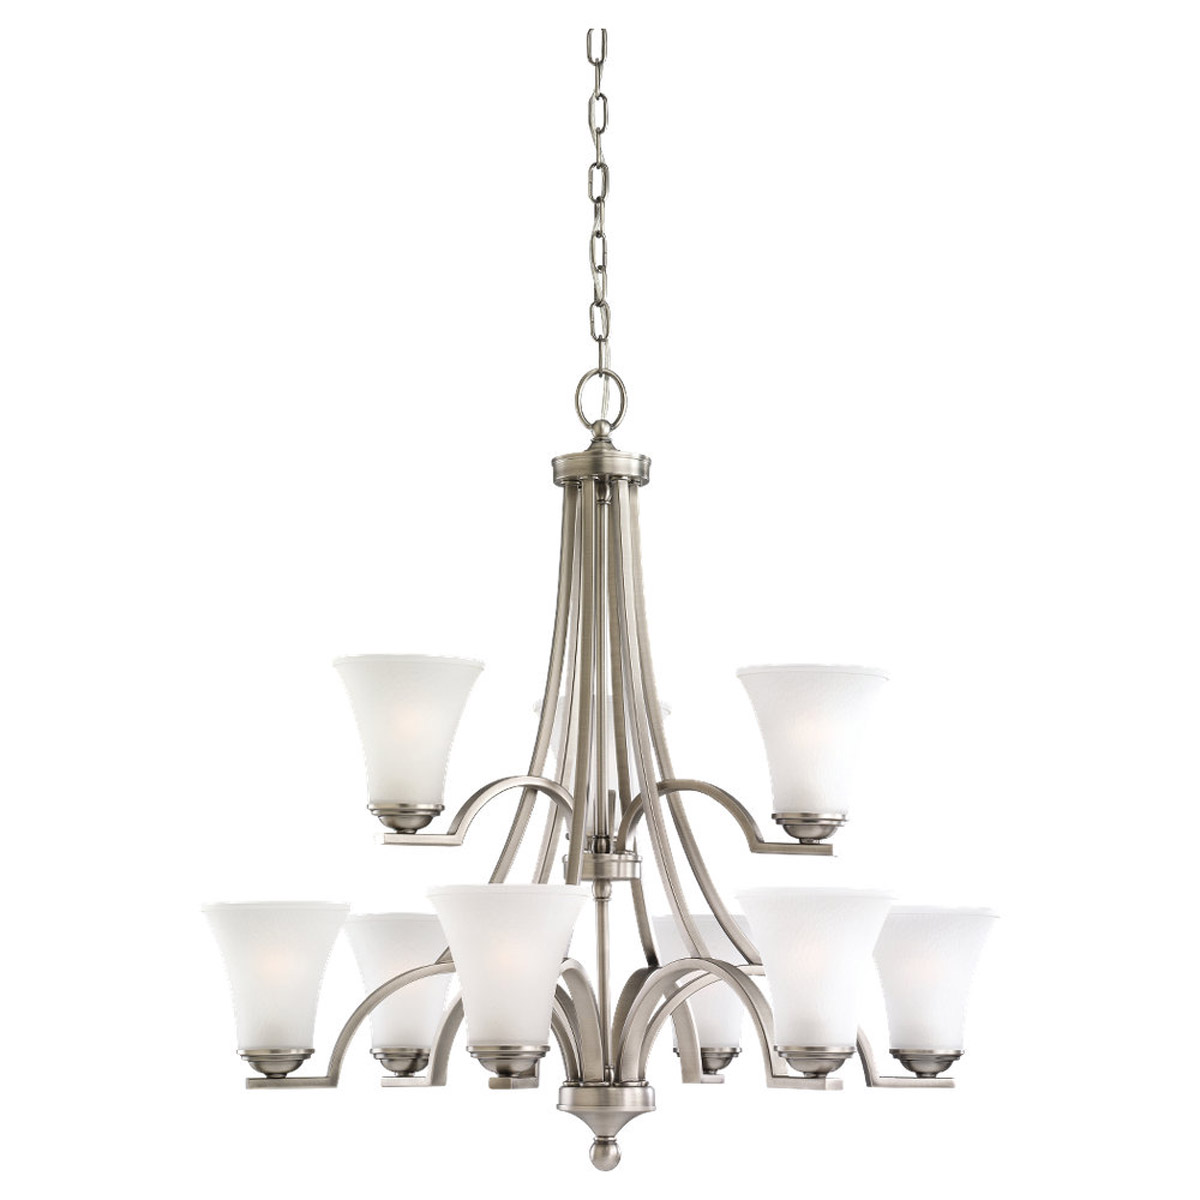 Sea Gull 31377-965 Somerton 9 Light 30 inch Antique Brushed Nickel Chandelier Ceiling Light in Satin Etched Glass, Standard photo